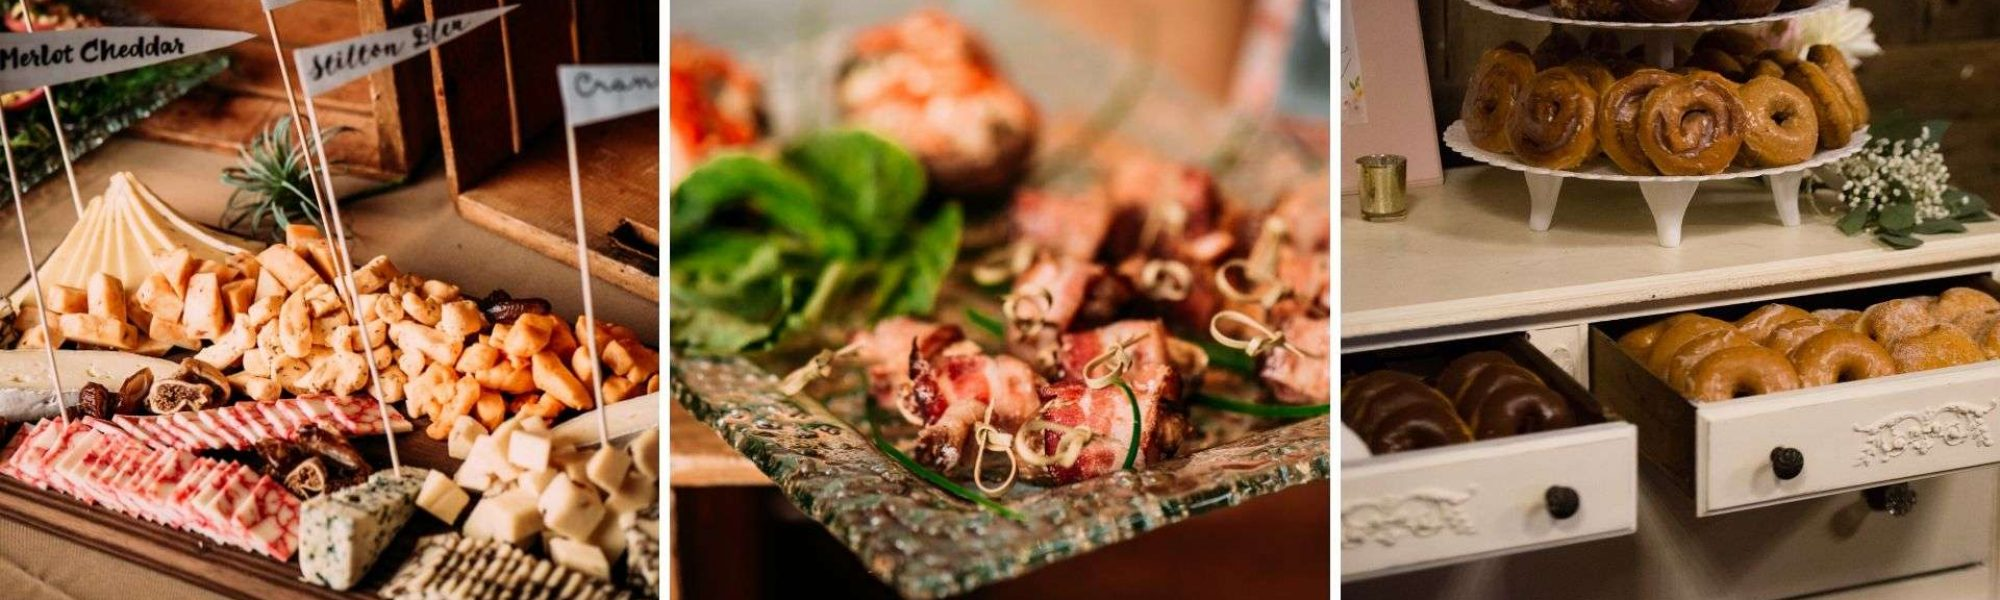 Microwedding Dishes from All Occasions Catering